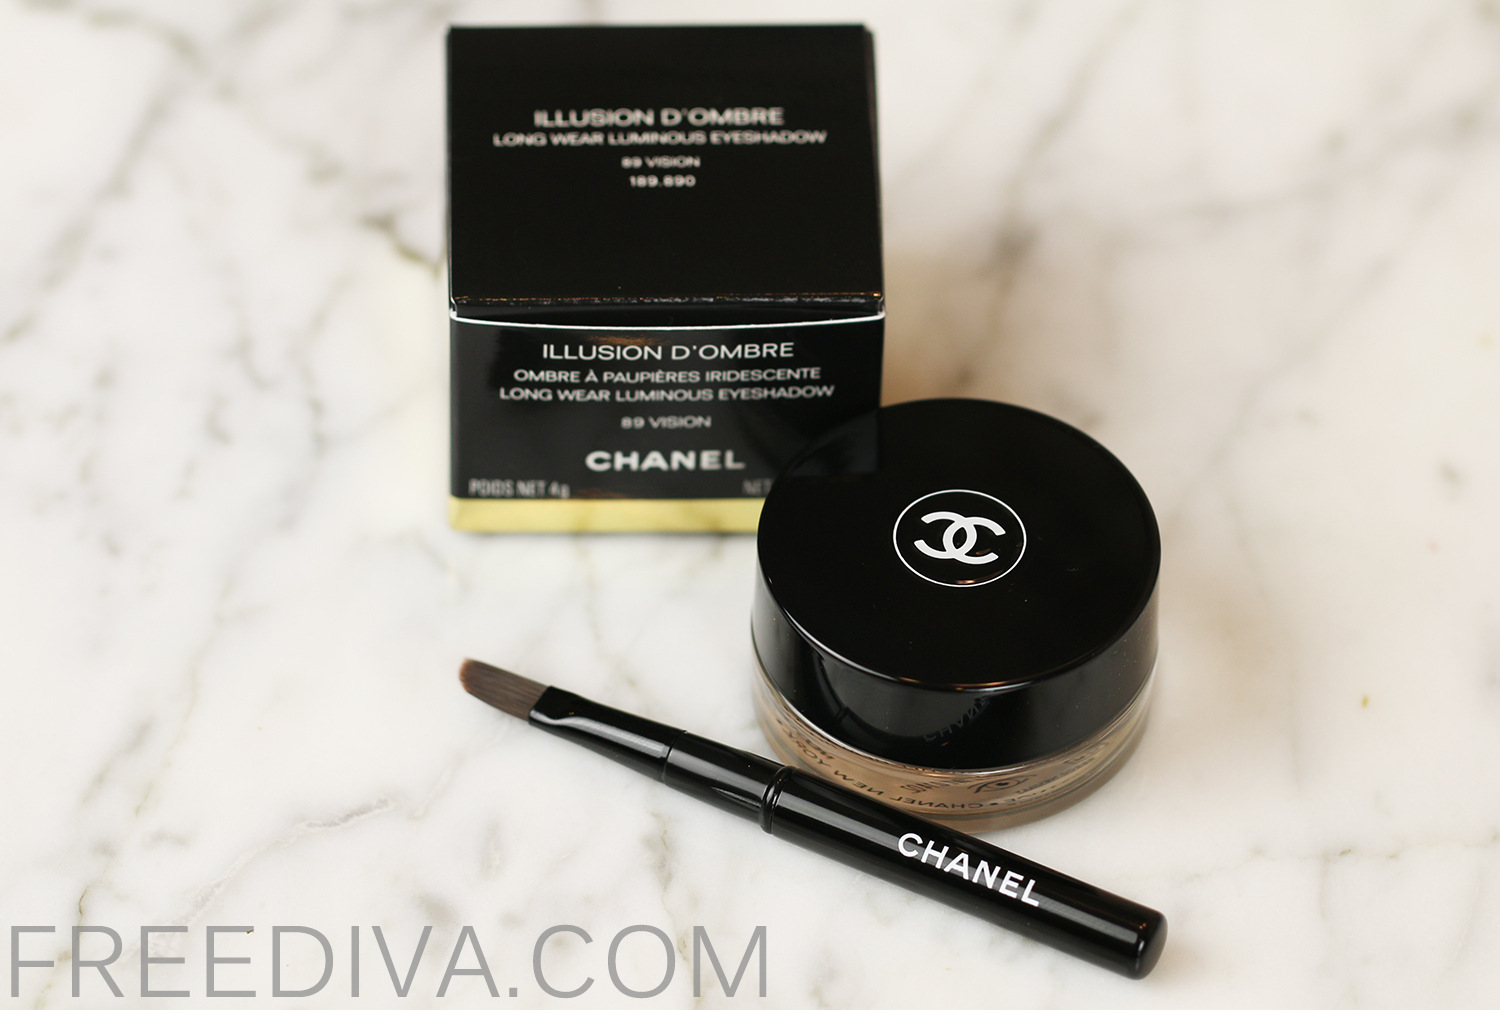 Chanel Illusion d'Ombre 89 Vision Long Wear Luminous Eyeshadow